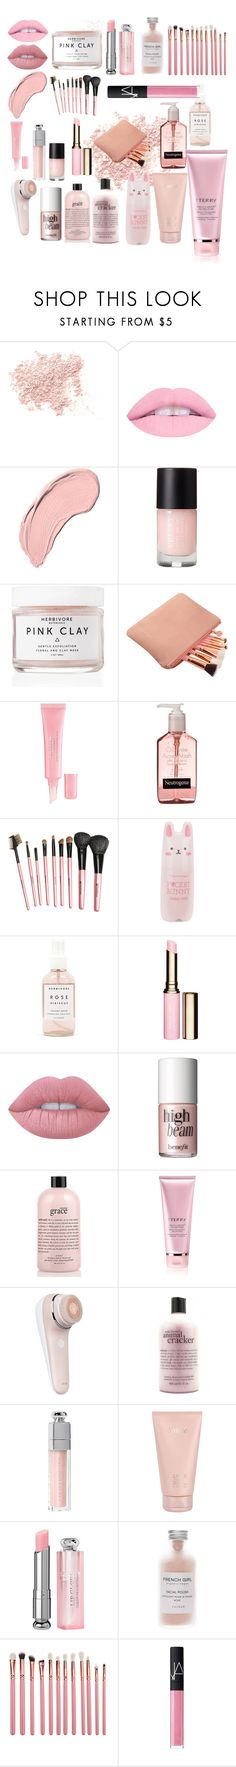 """""""Pink blush make up set"""" by rainy-beach ❤ liked on Polyvore featuring beauty, Bare Escentuals, L.A. Girl, NYX, Herbivore, Christian Dior, Tony Moly, Clarins, Lime Crime and Benefit"""